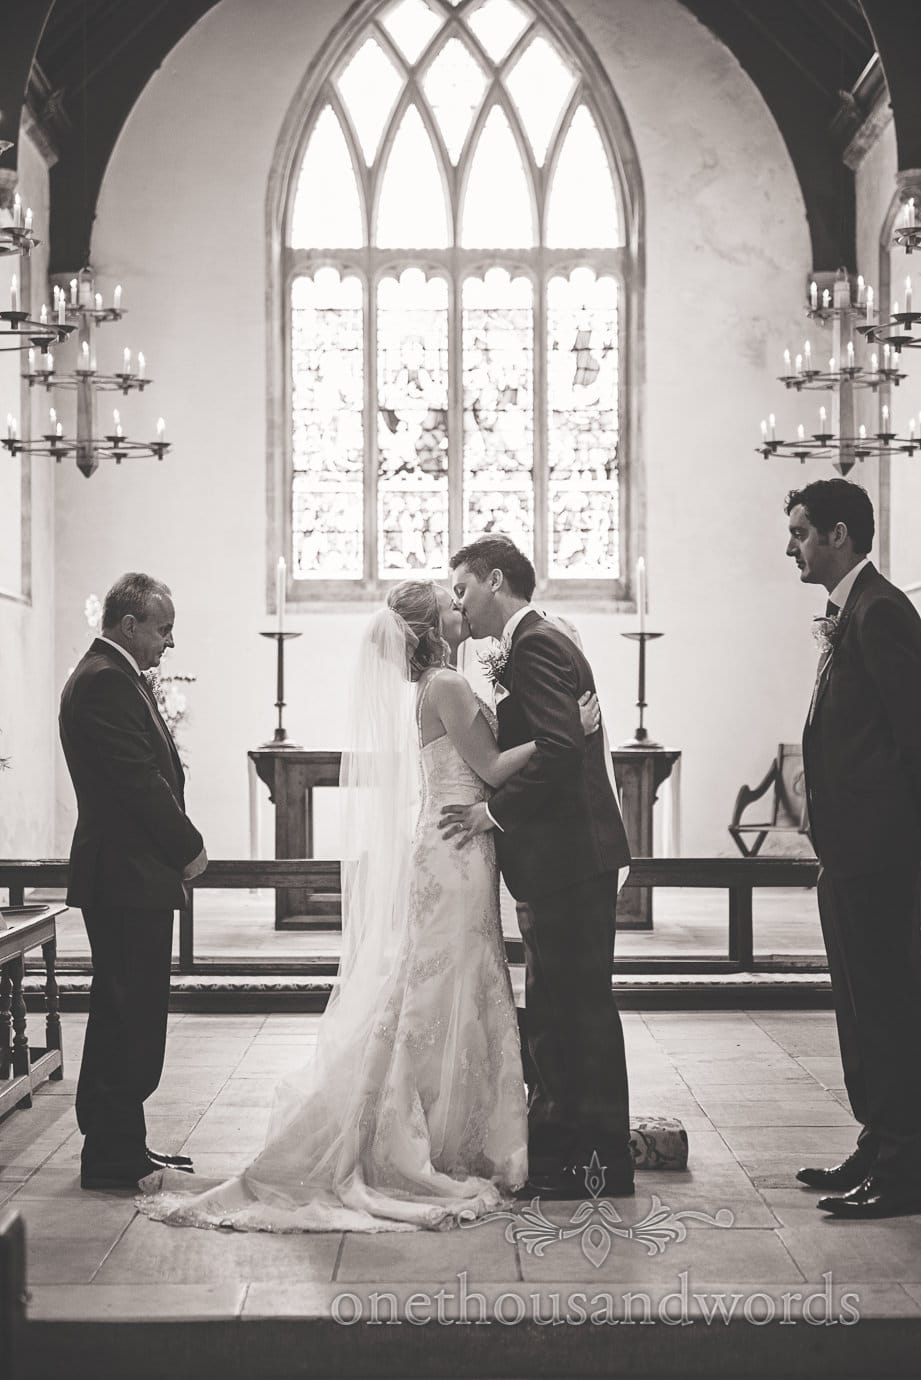 Black and white wedding photograph of first kiss at church wedding